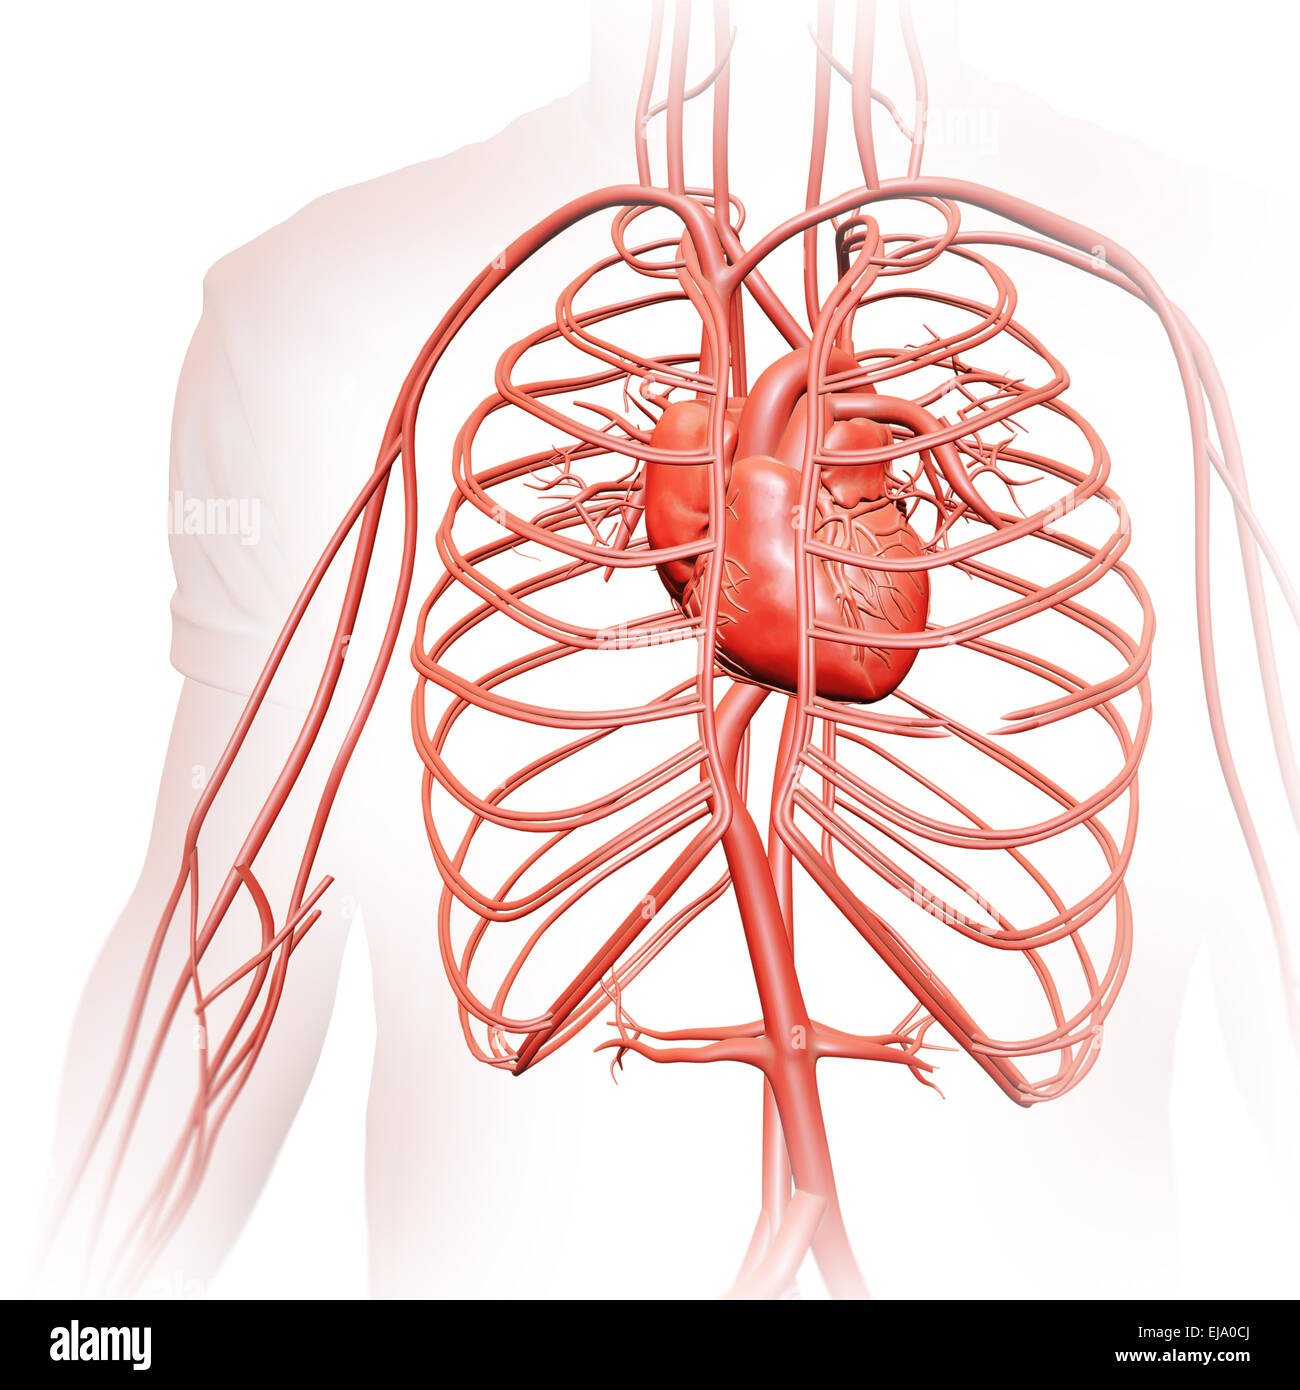 Human circulatory system - medical illustration - Stock Image